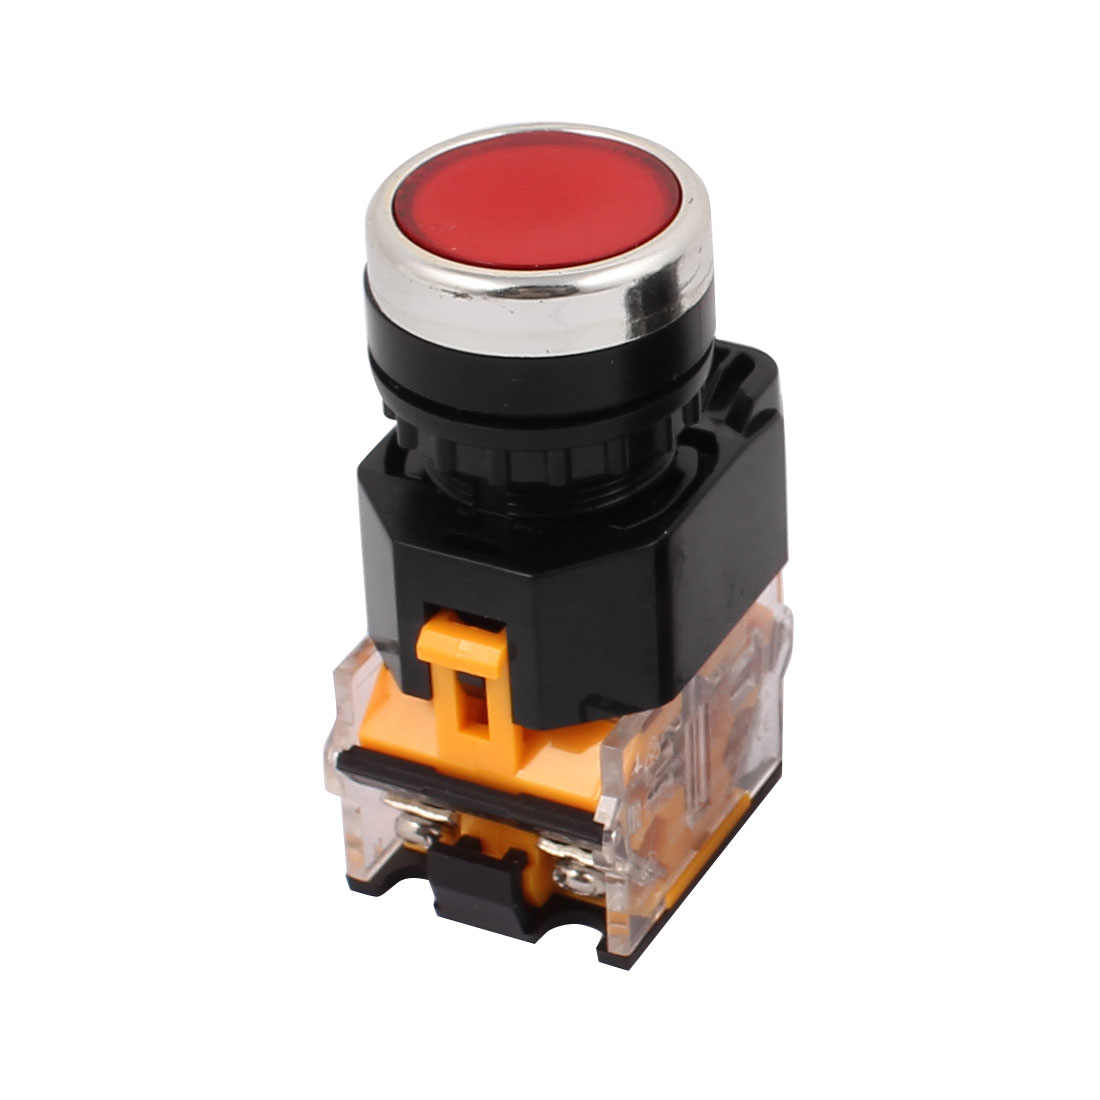 AC 400V 10A Red Button Momentary Push Button Switch 1NO 1NC DPST